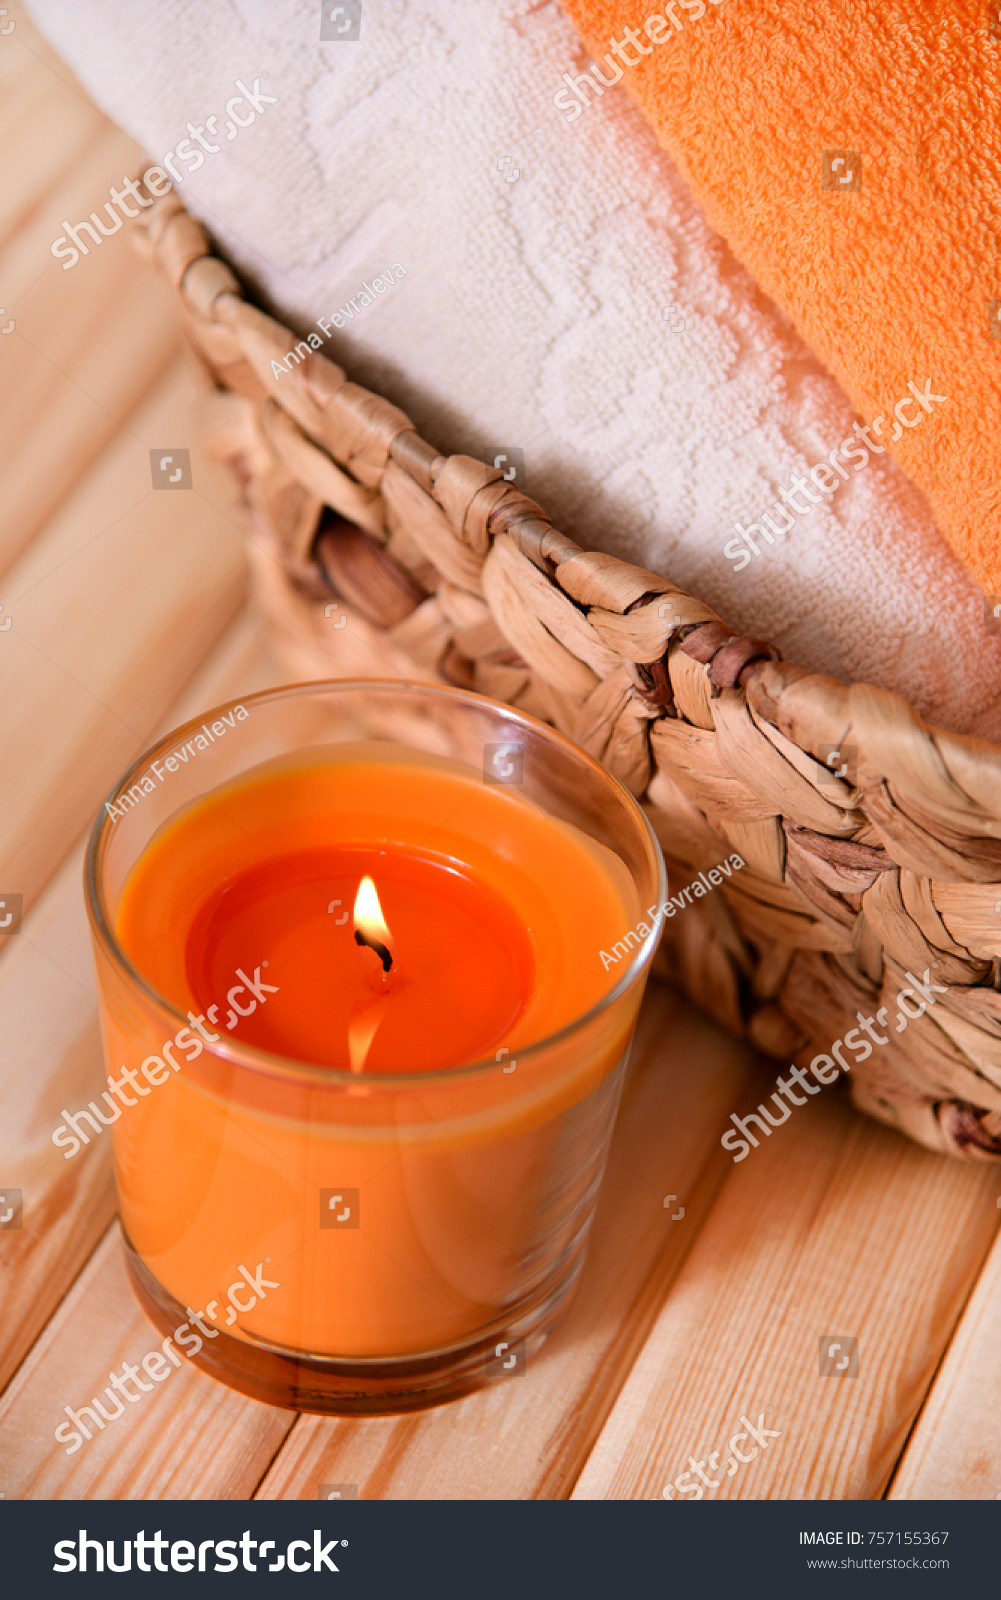 Orange Scented Candle Two Colored Towels Stock Photo Edit Now 757155367